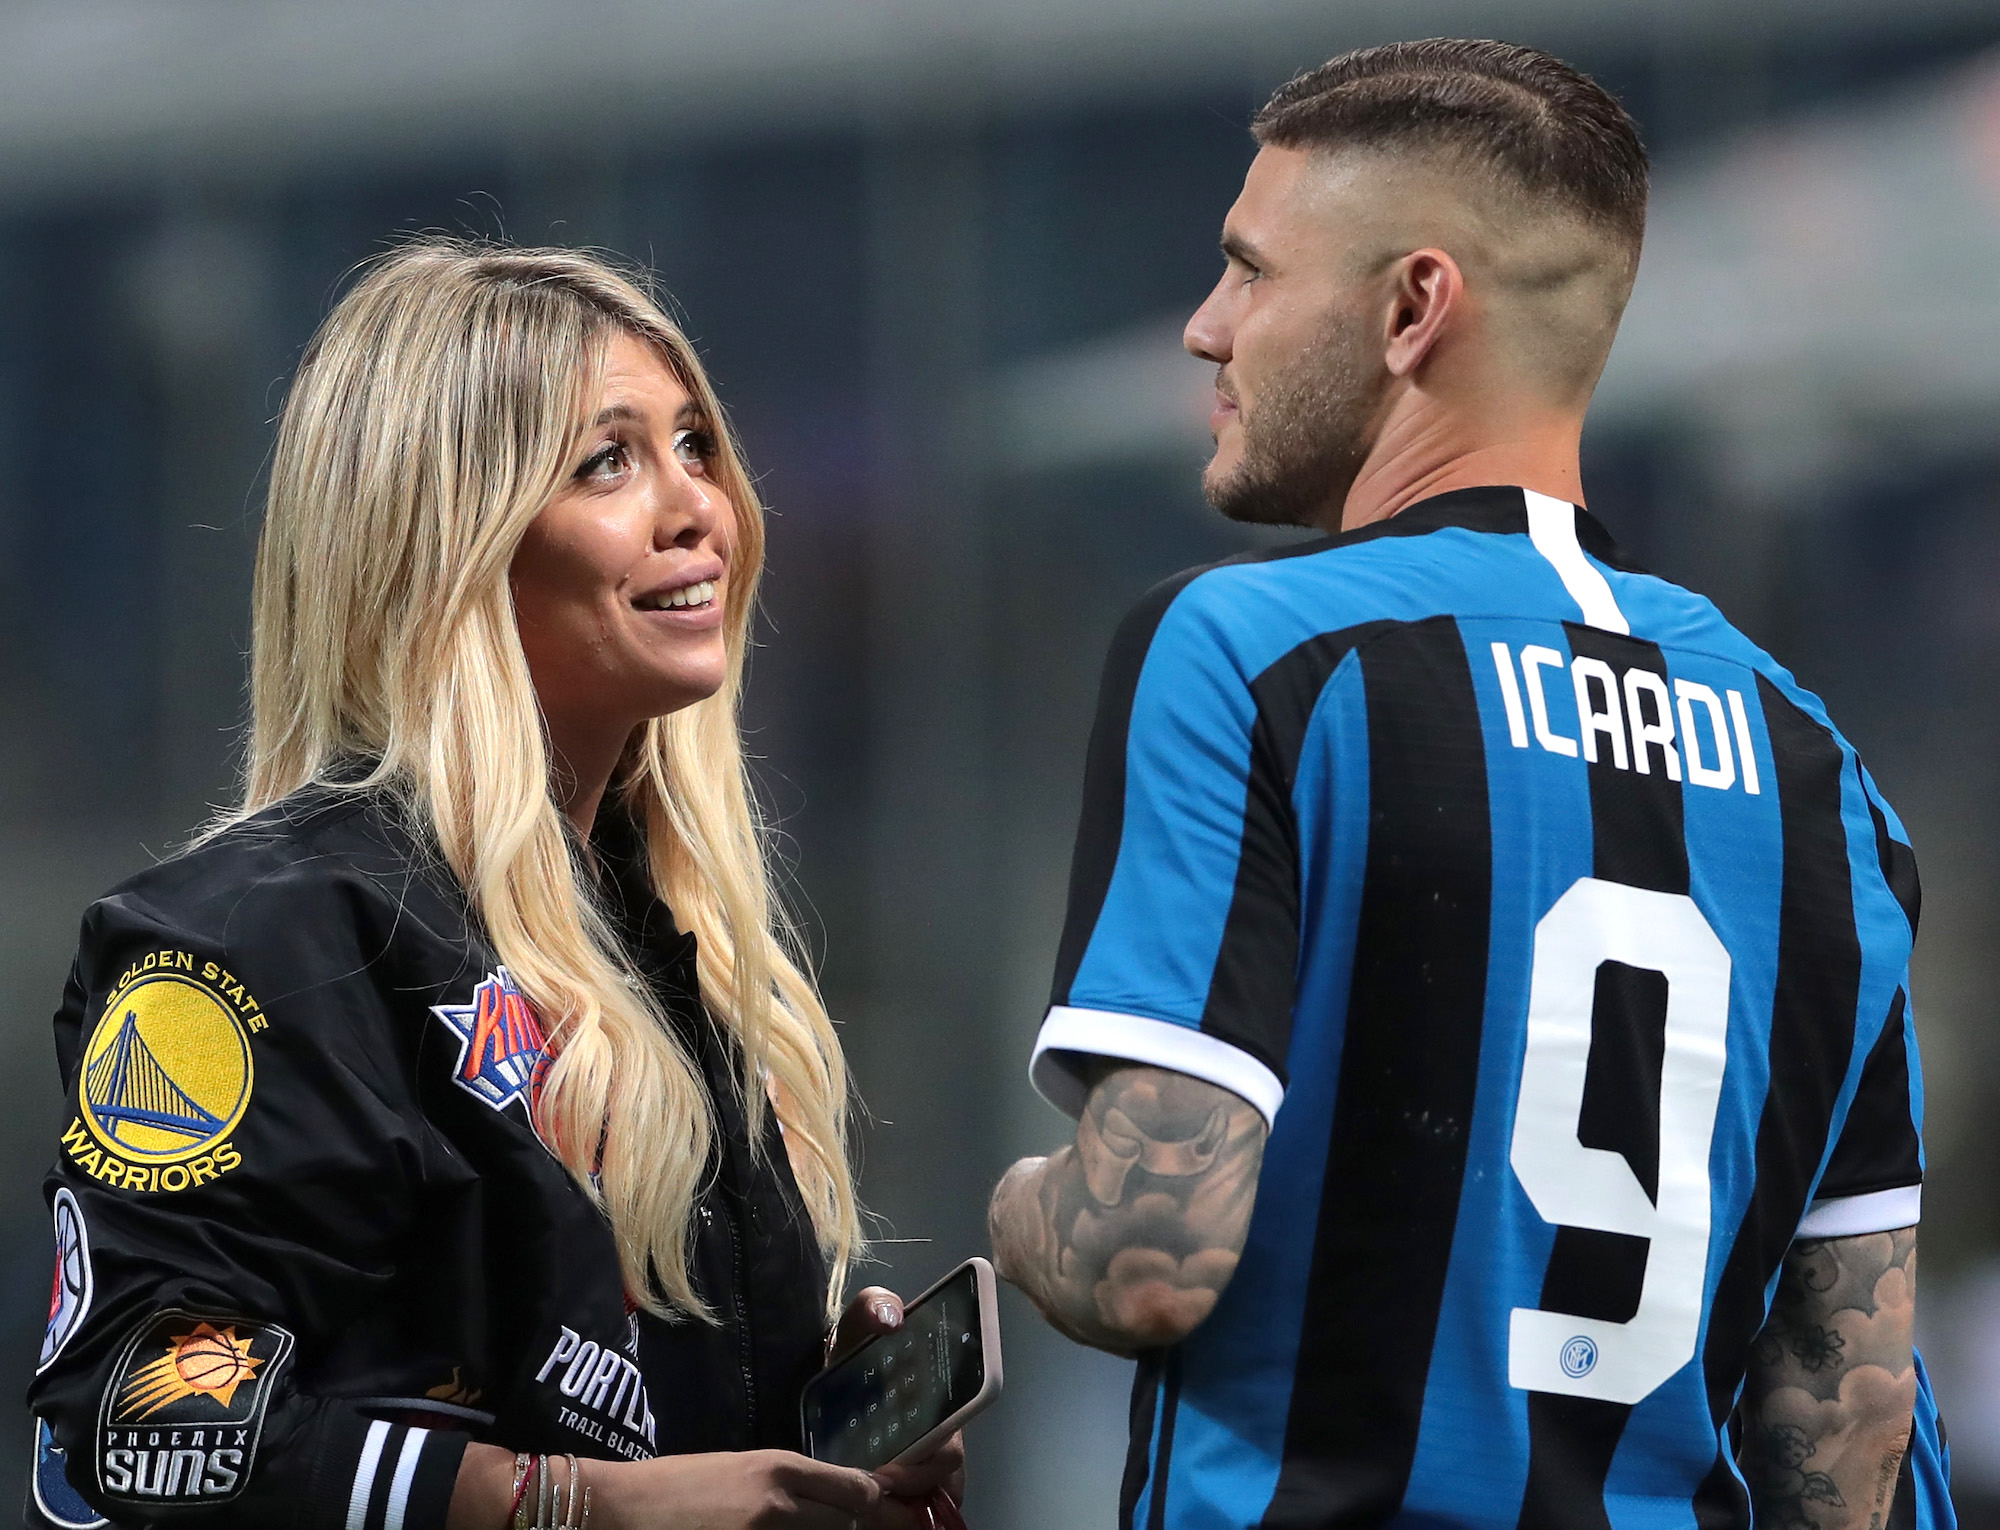 """Wanda Nara reveals background on Icardi to Milan: """"There was a possibility"""""""